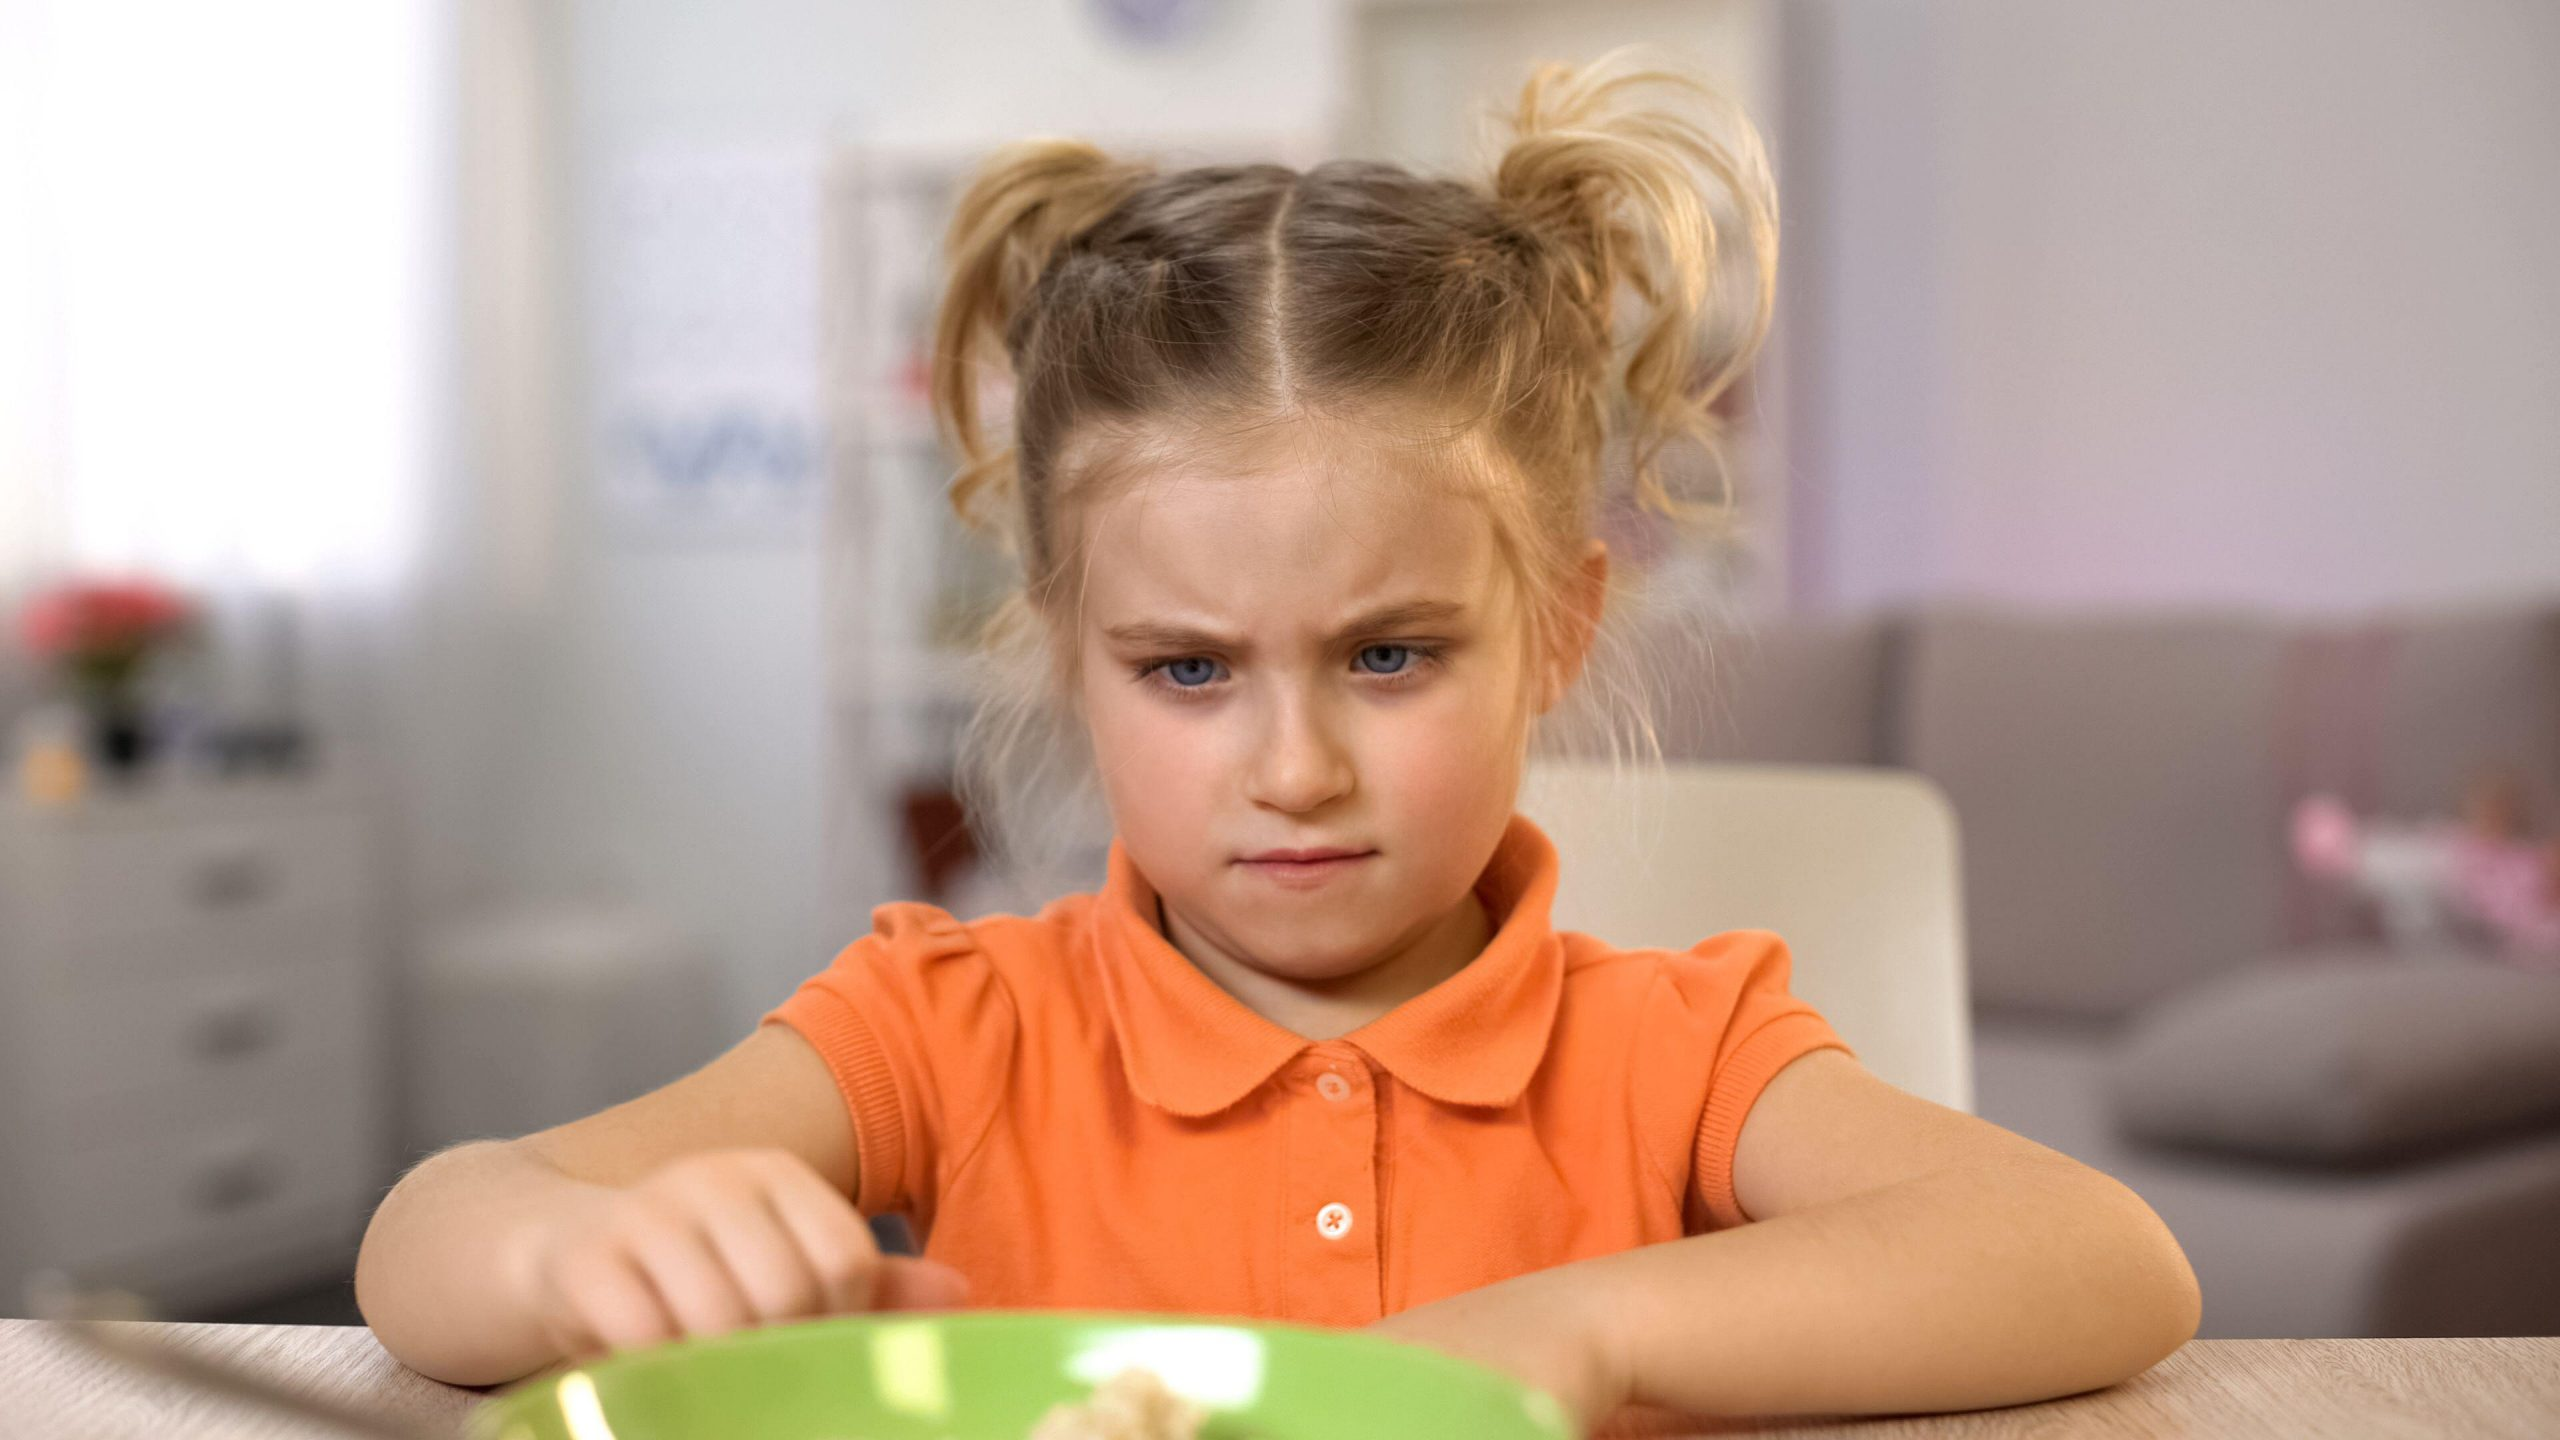 How to tell if your child has an eating disorder